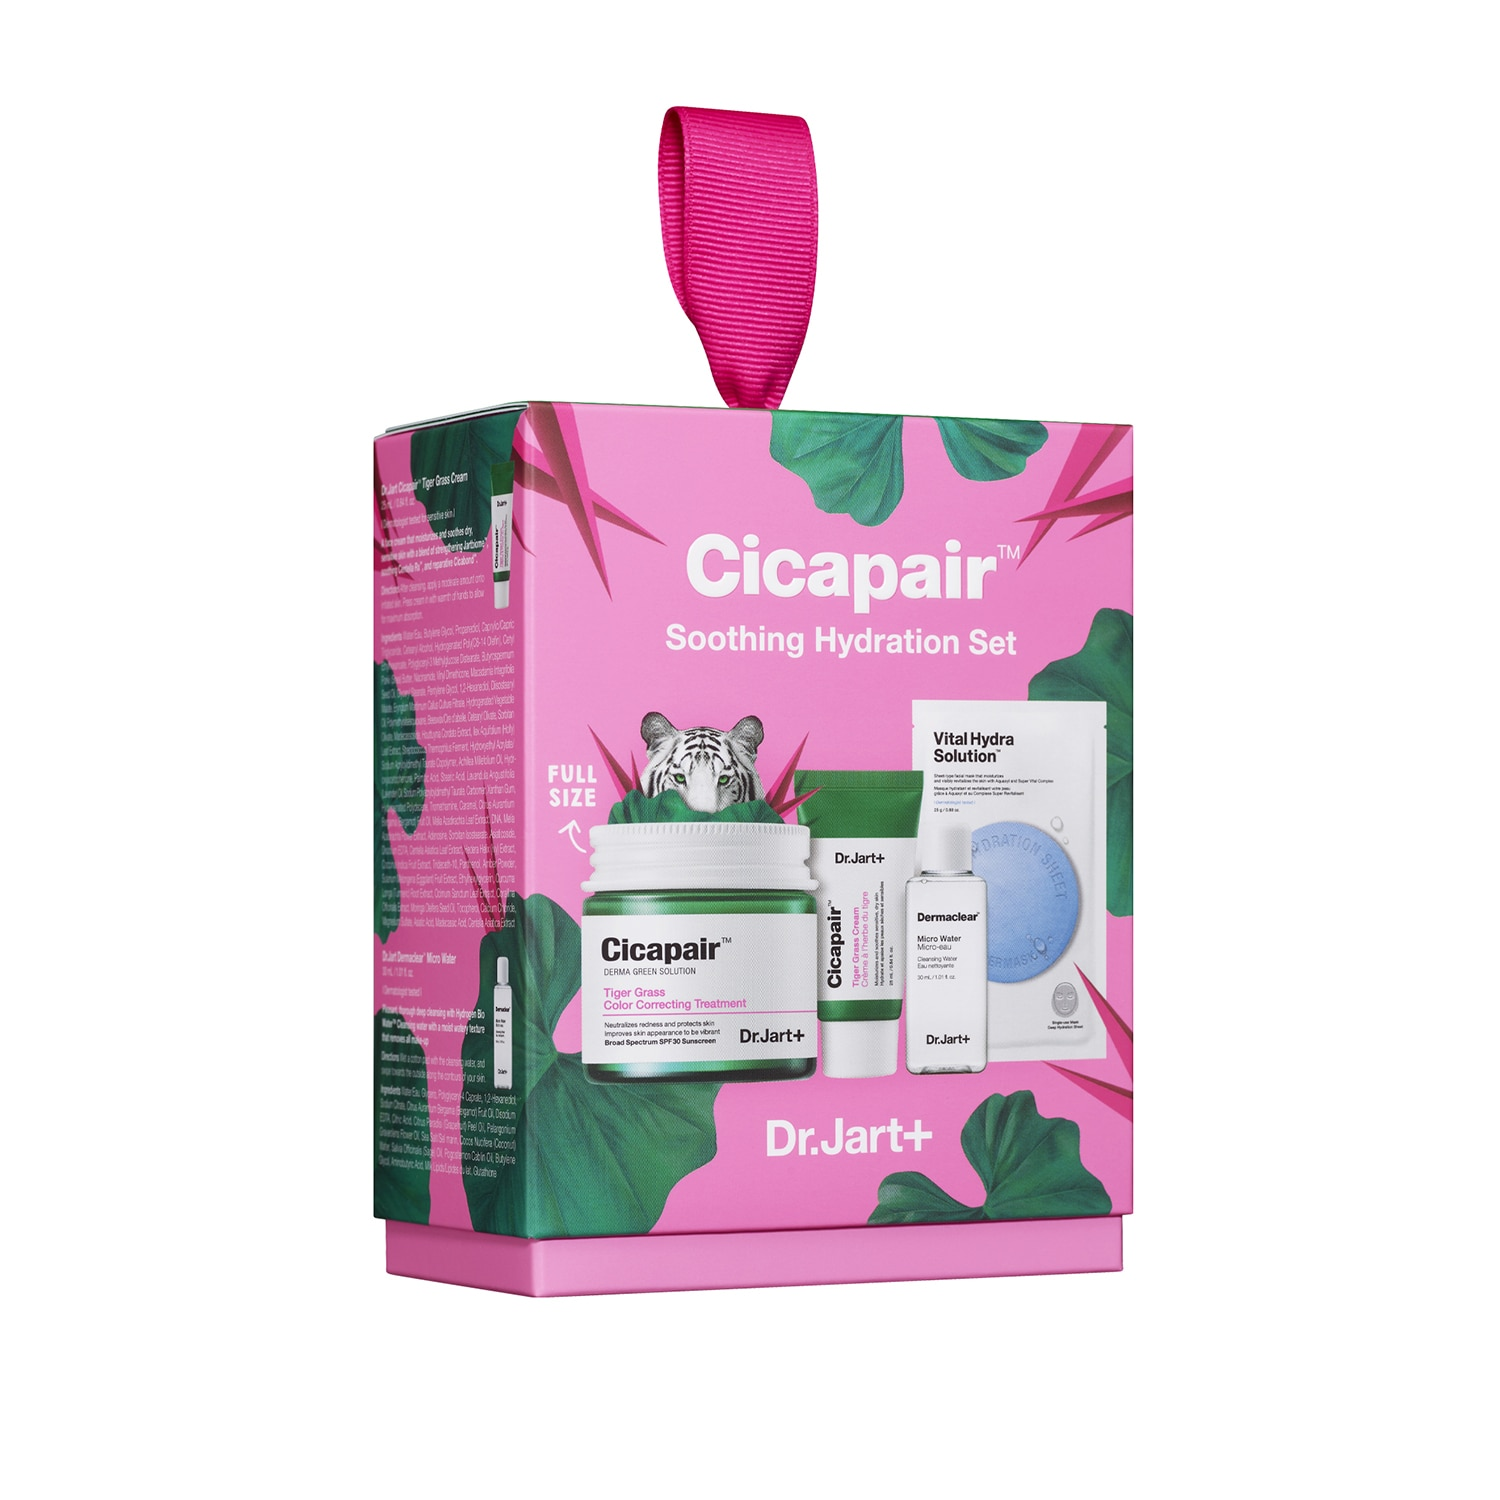 CICAPAIR™ SOOTHING HYDRATION SET